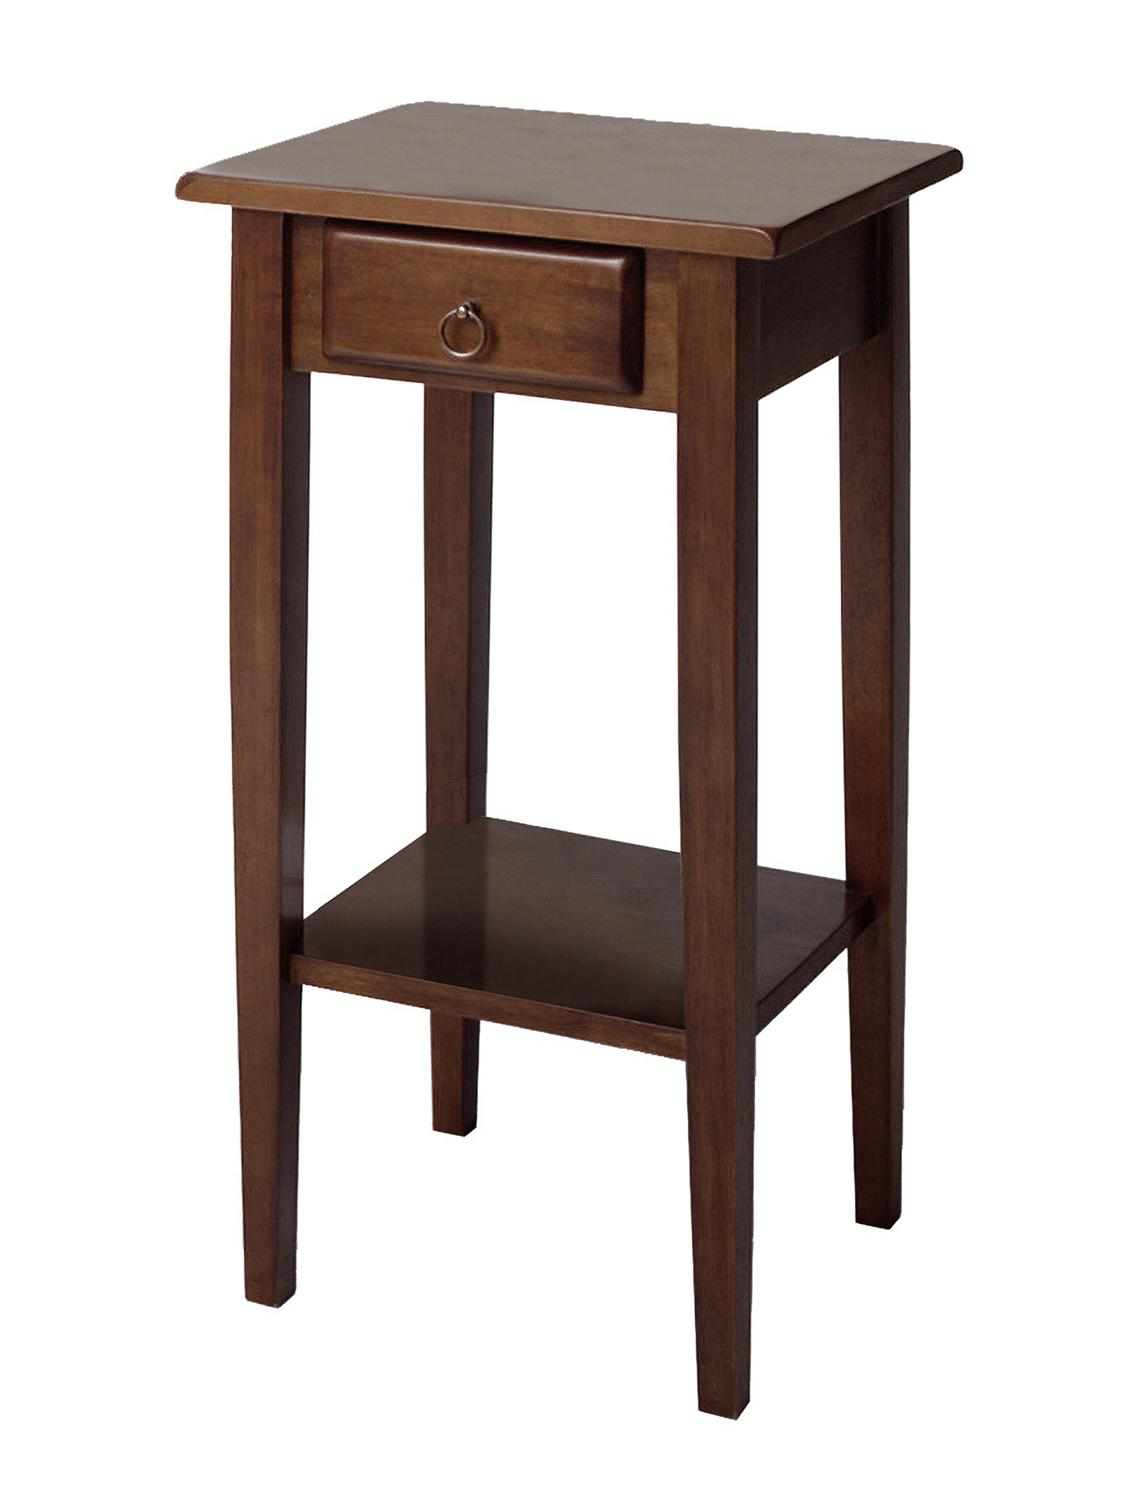 Winsome Regalia Accent Table With Drawer Shelf By OJ